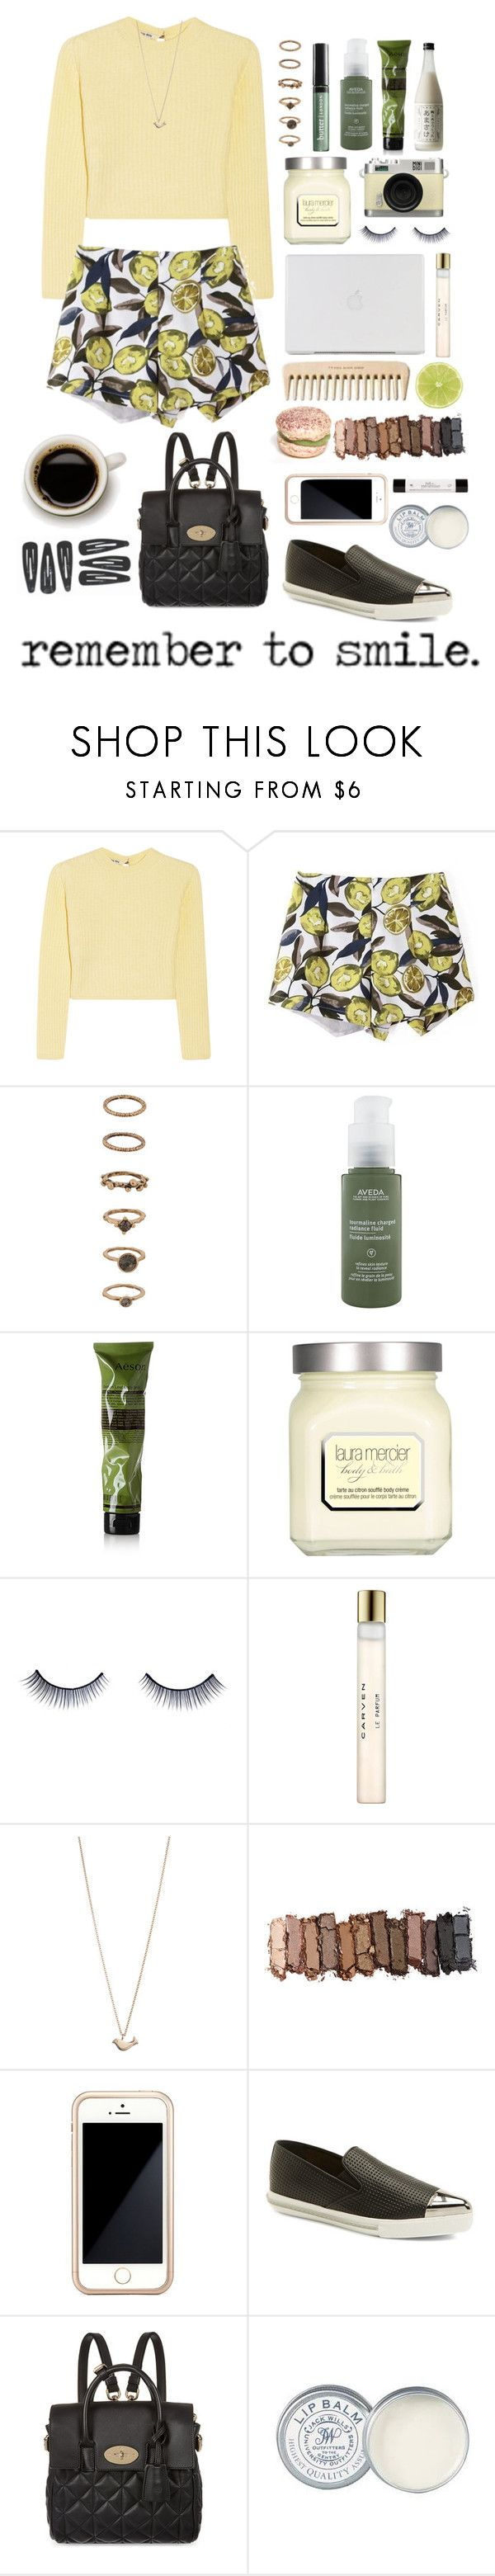 """""""Remember to smile :))"""" by moisanu-mara ❤ liked on Polyvore featuring Miu Miu, Forever 21, Butter London, Aveda, Aesop, Laura Mercier, Retrò, Napoleon Perdis, Carven and Minor Obsessions"""